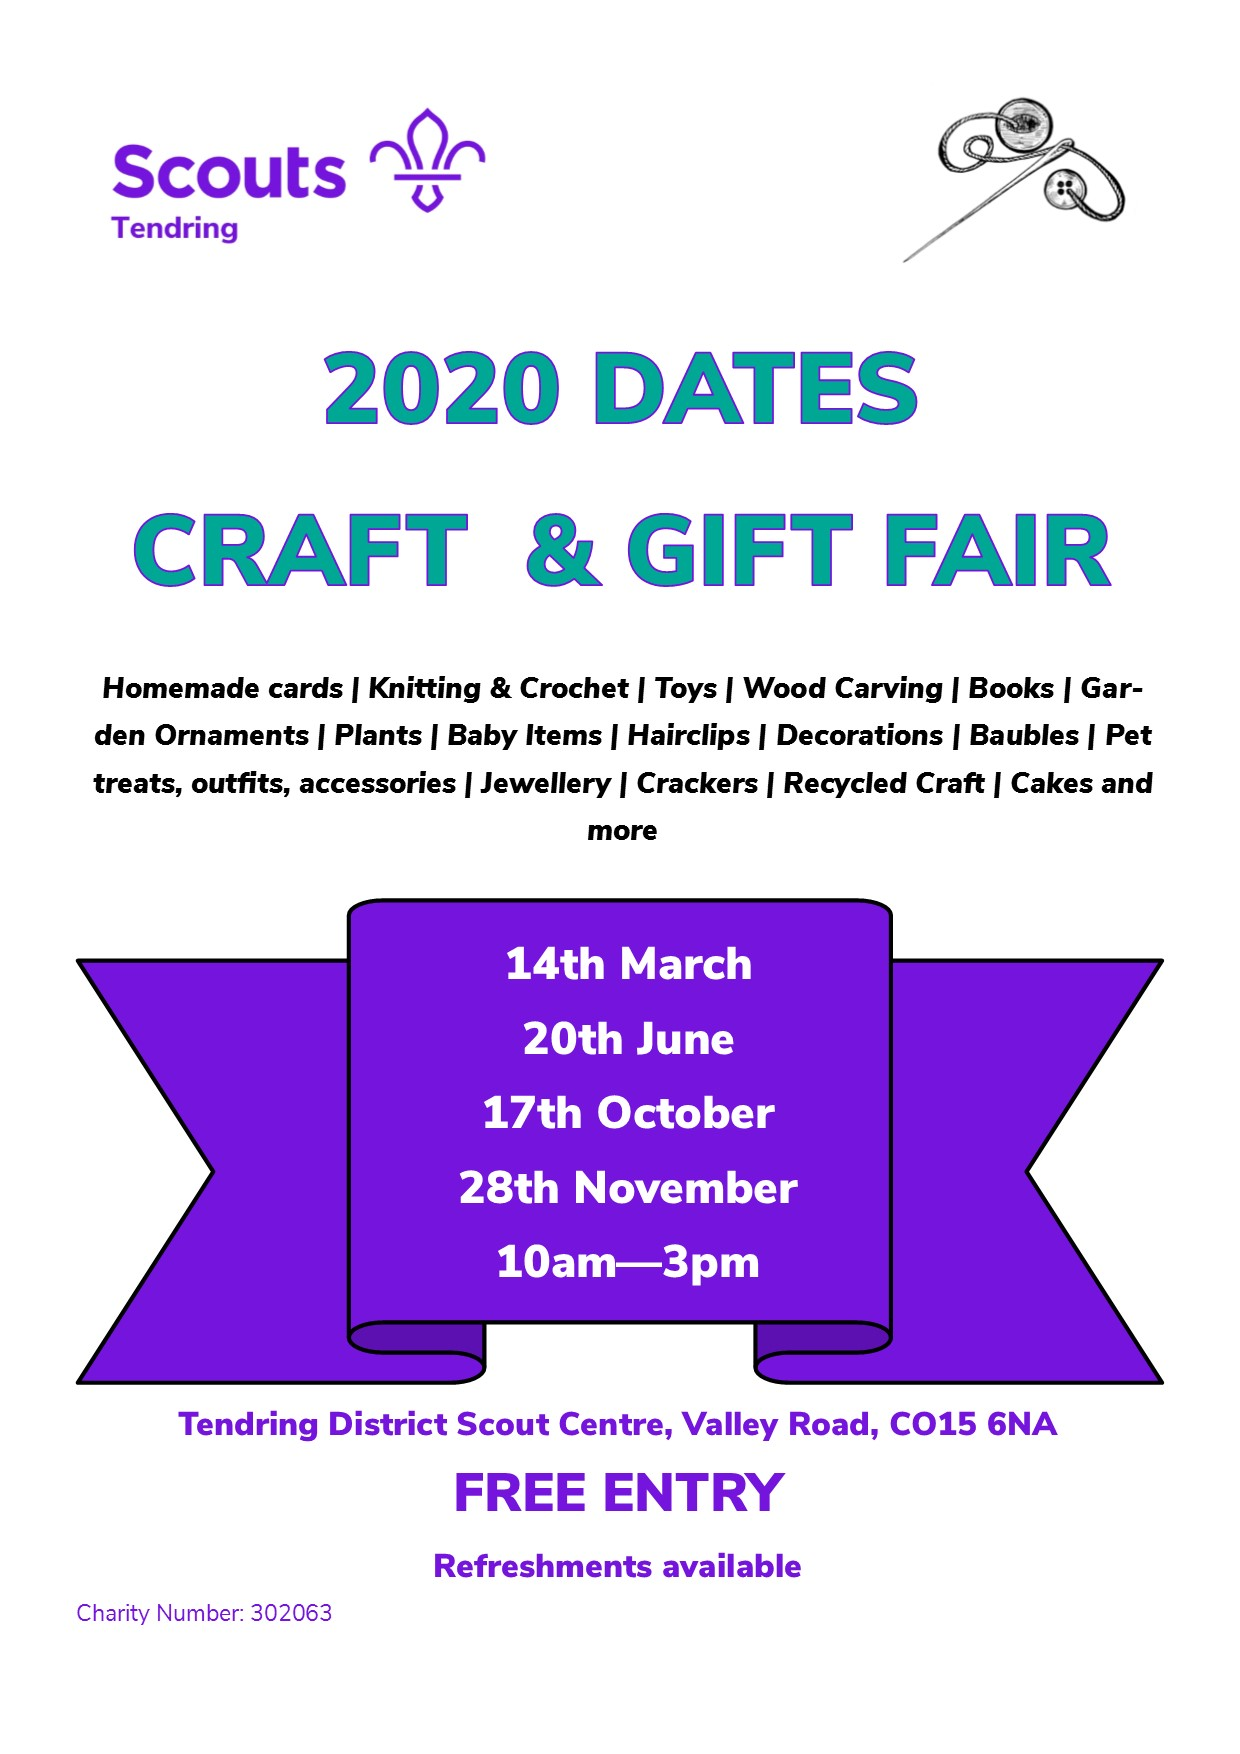 Tendring District Scouts Craft & Gift Fair